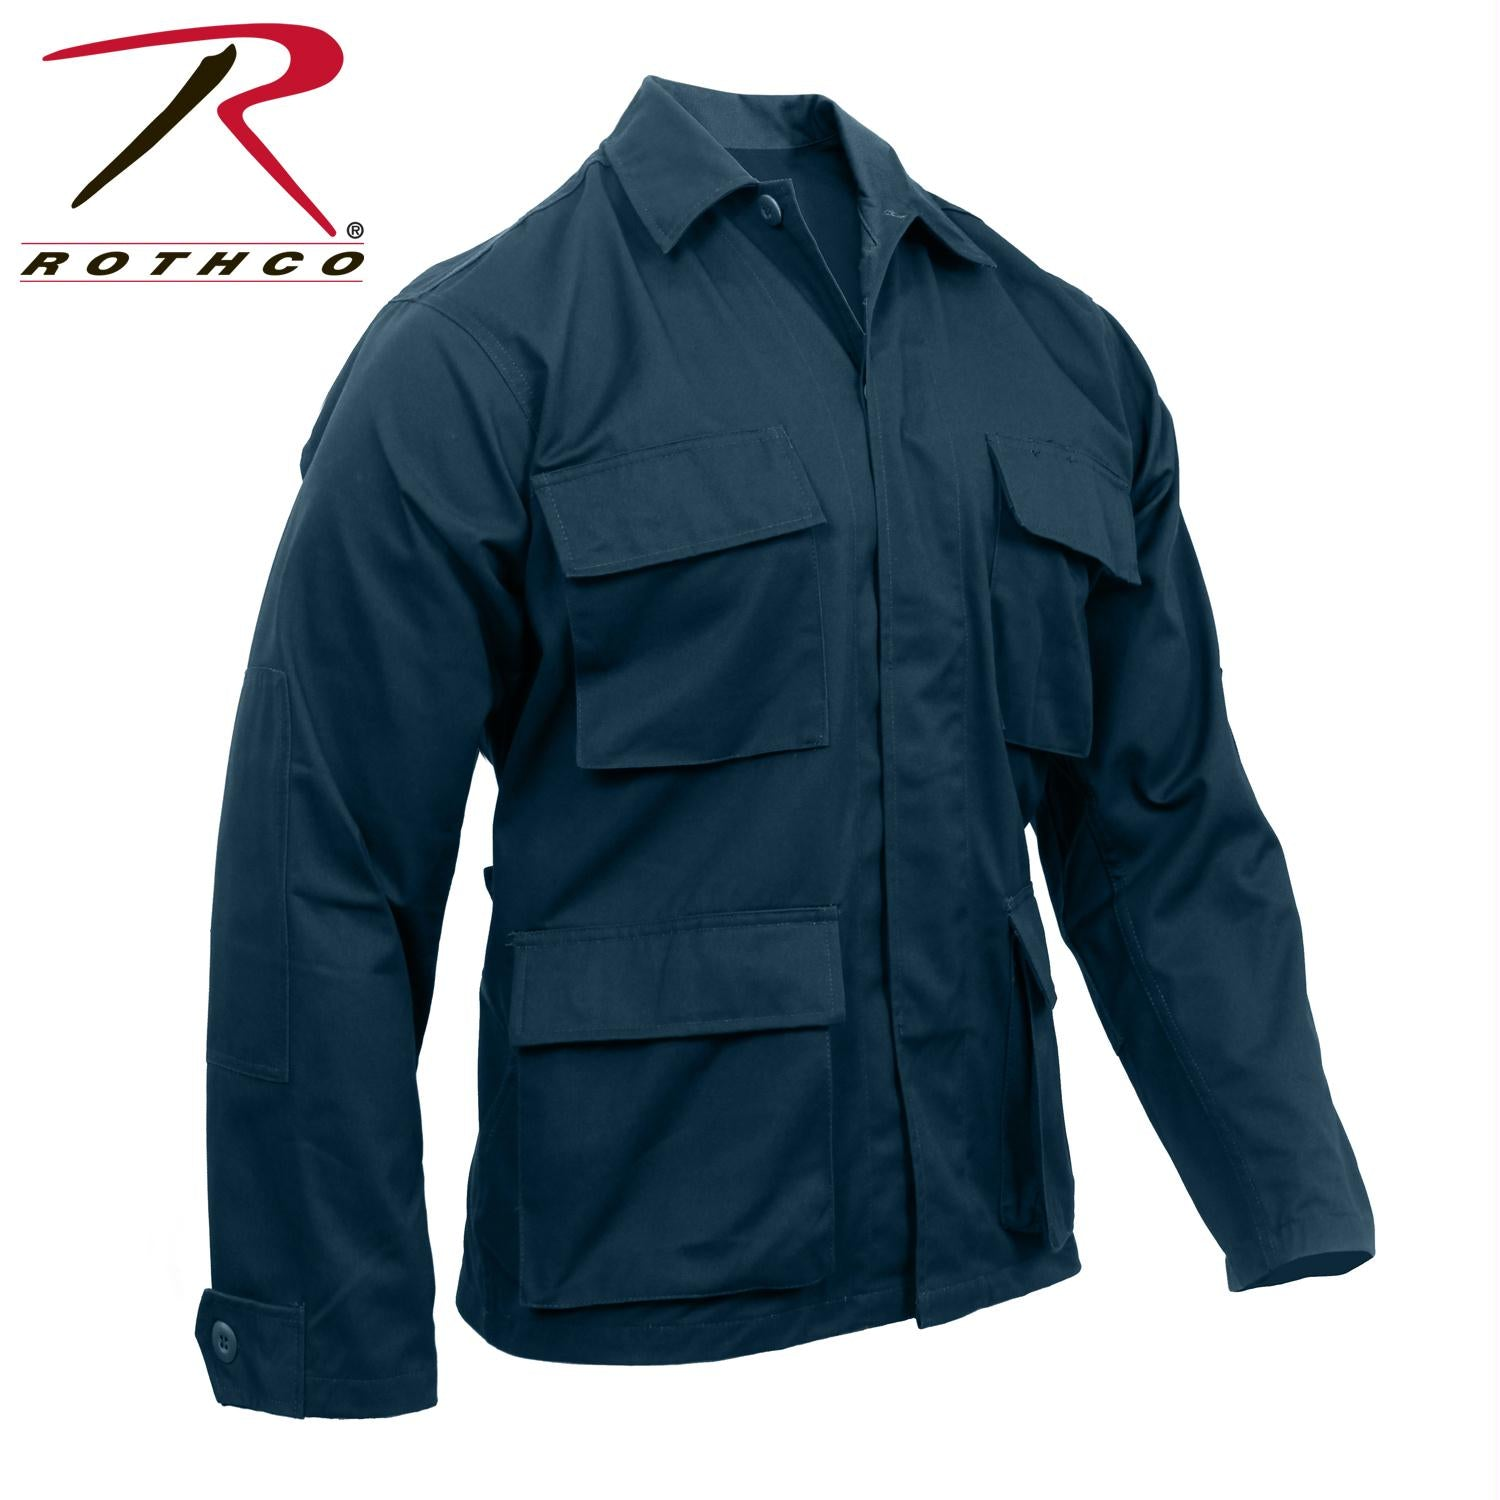 Rothco Poly/Cotton Twill Solid BDU Shirts - Midnight Navy Blue / M